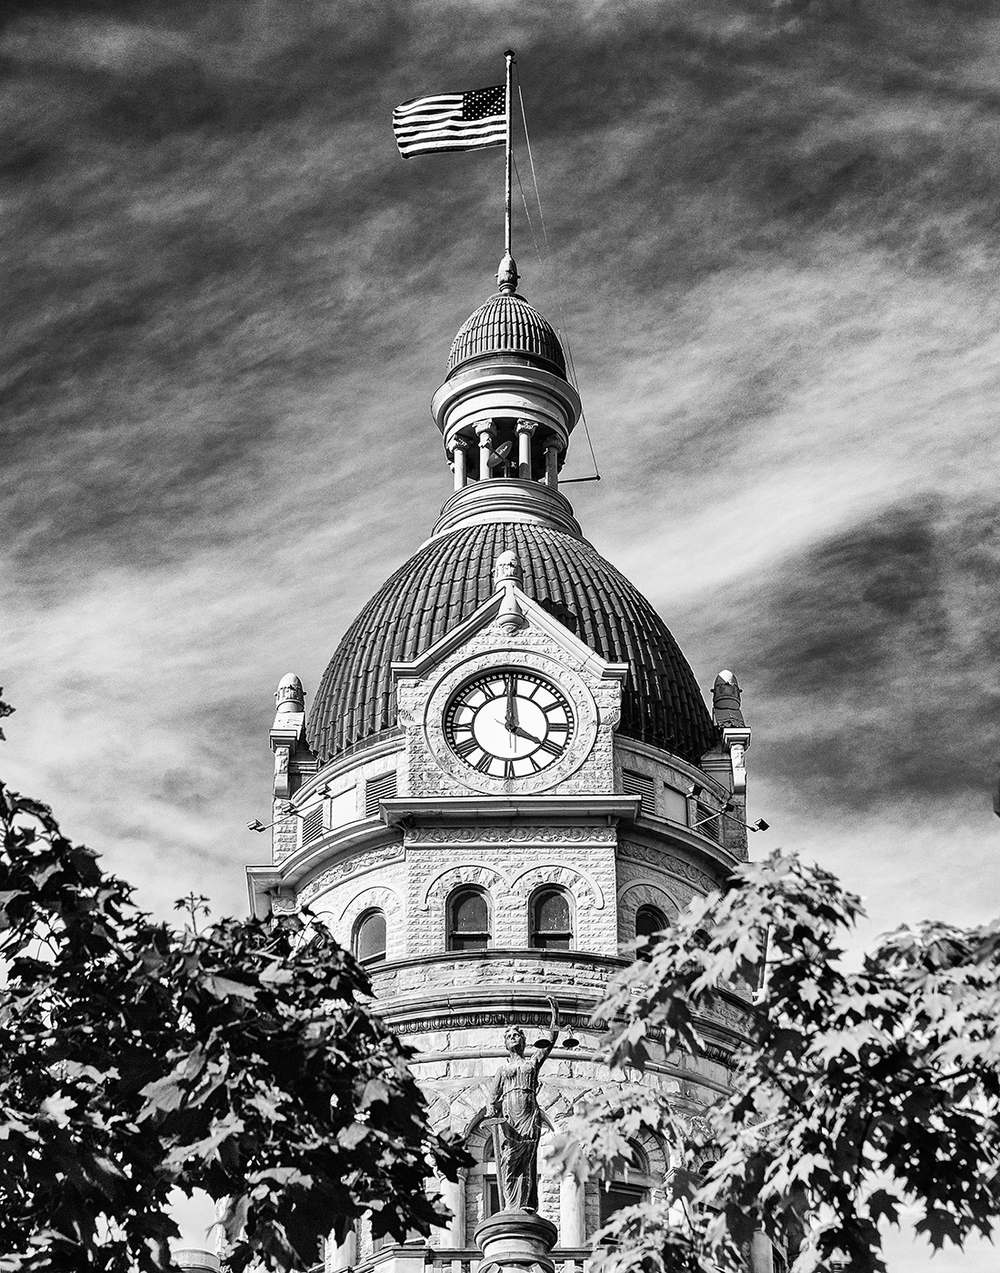 This is the Trumbull County Courthouse located in Ohio.  I made this photograph in September 2015 after we attended a wedding at the gazebo outside of the courthouse.  This caught my eye with the way the trees framed the statue and when I pushed the shutter I already was thinking of making this into a B&W photograph.